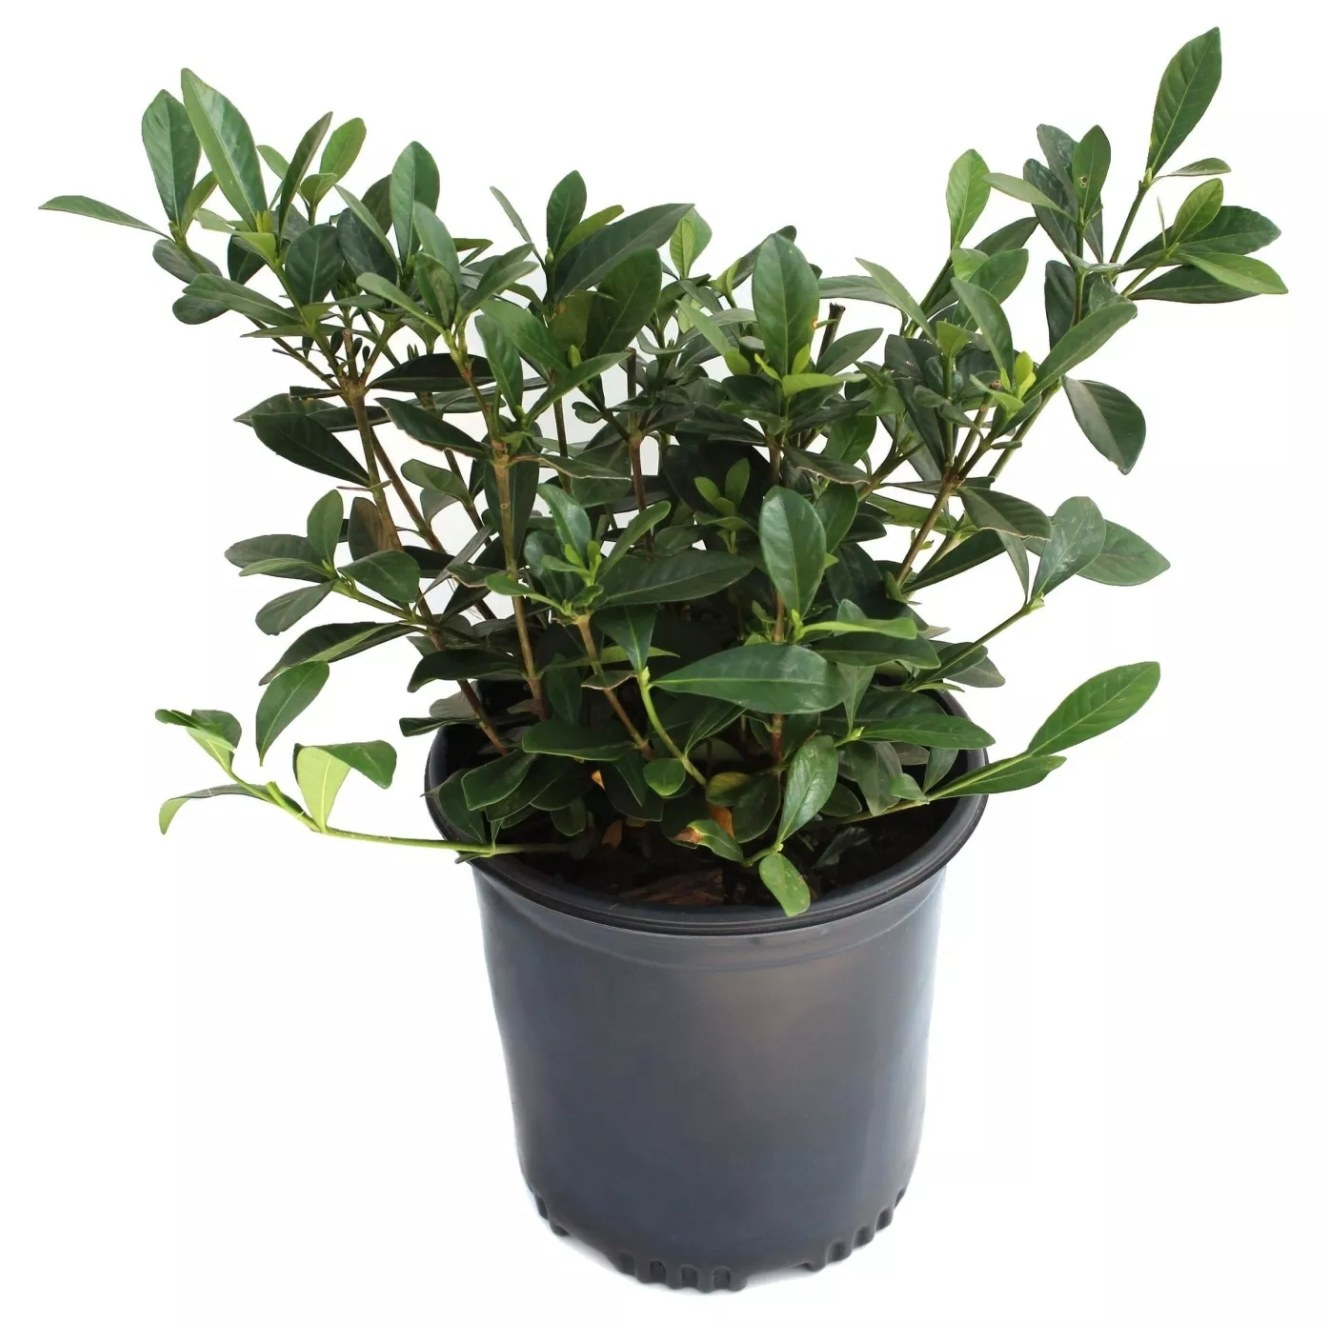 The potted bush